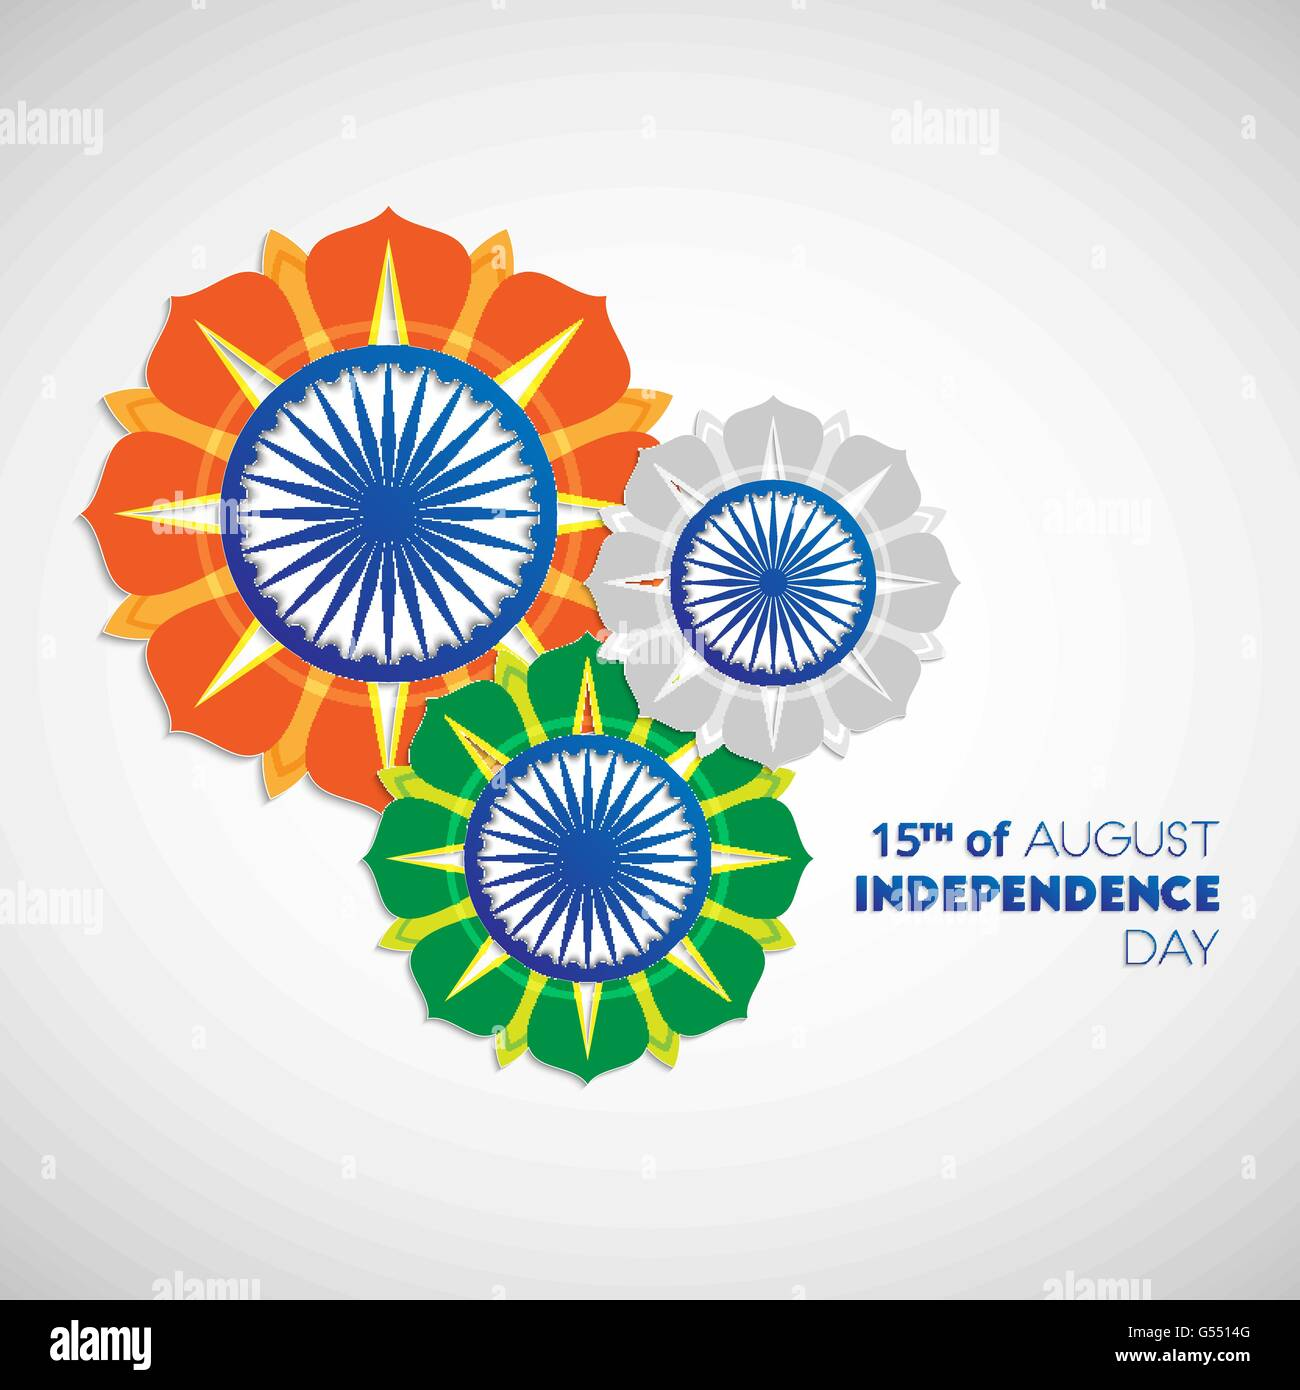 Happy Independence Day India  15th of august  Indian